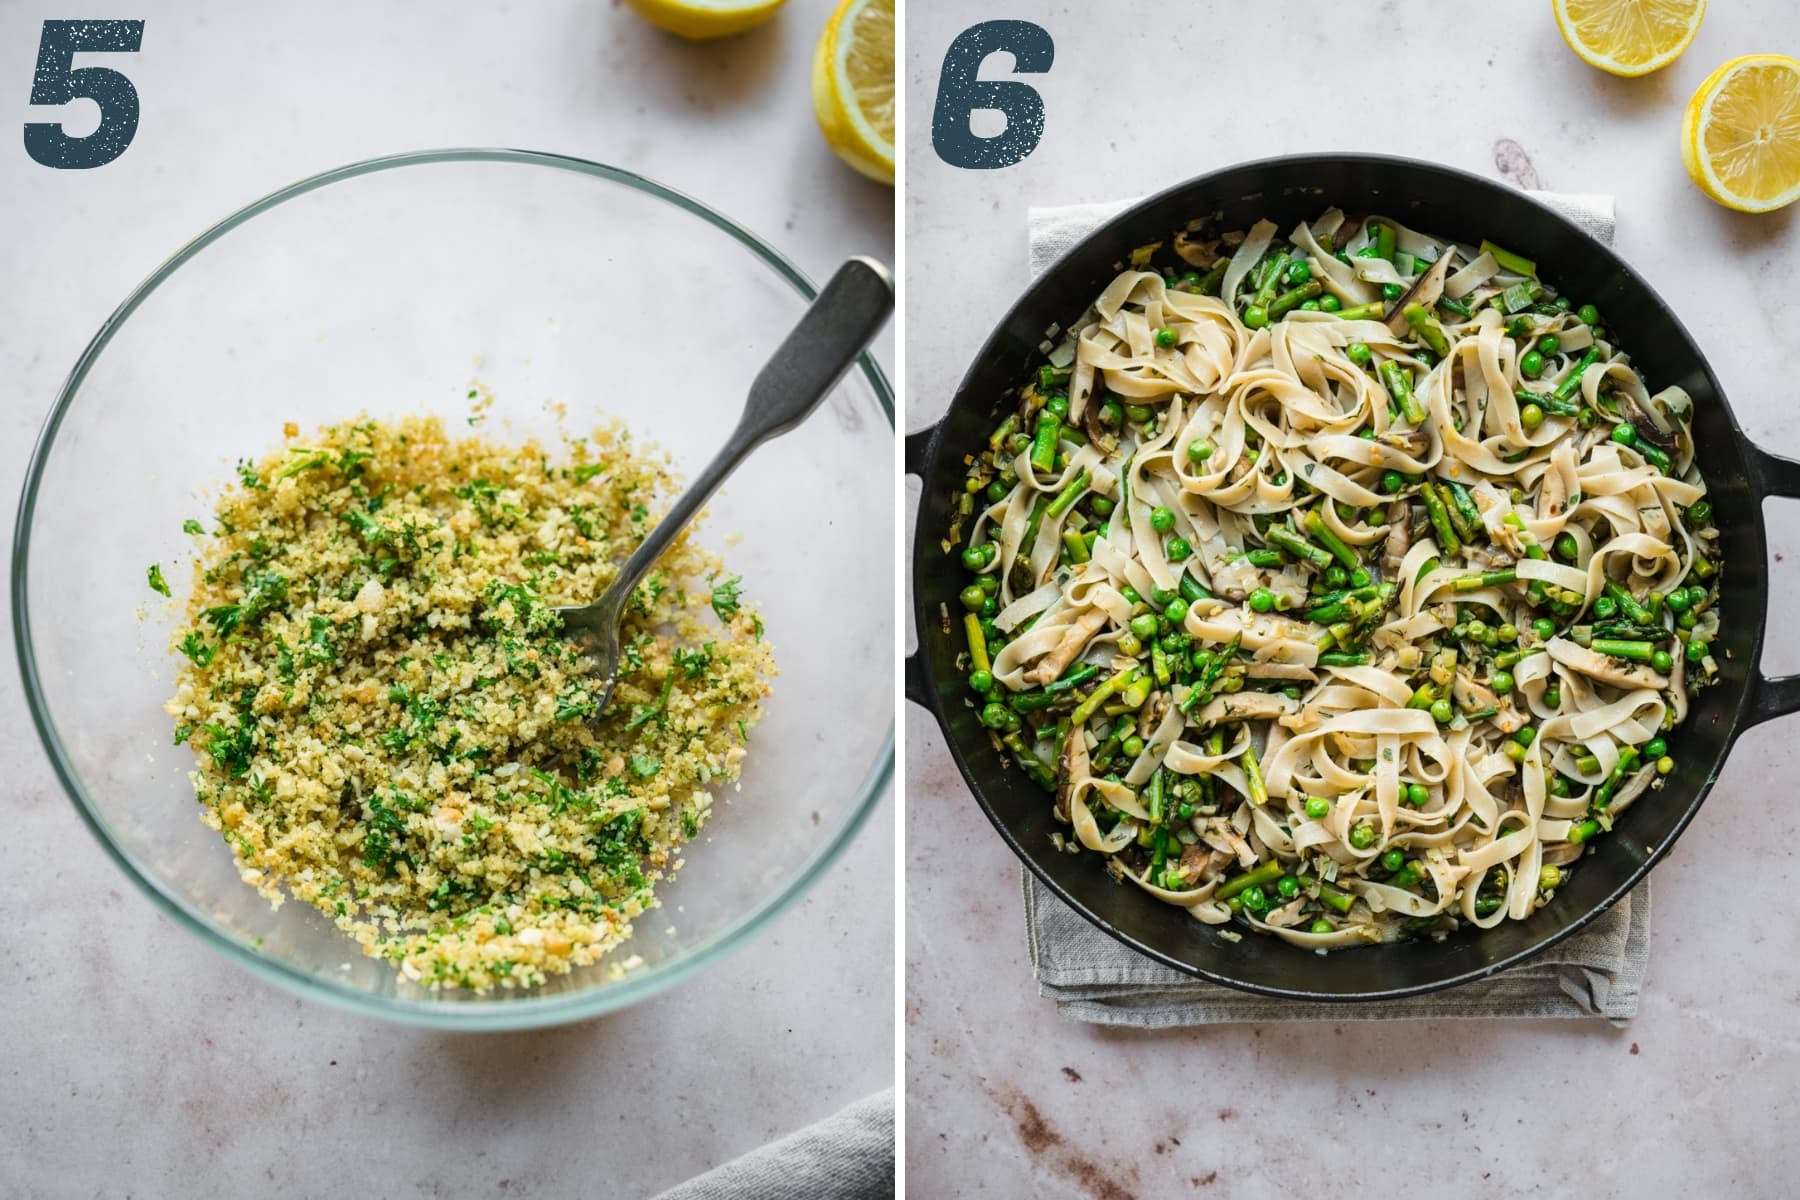 on the left: breadcrumbs in a small mixing bowl. On the right: spring vegetable pasta in a cast iron skillet.